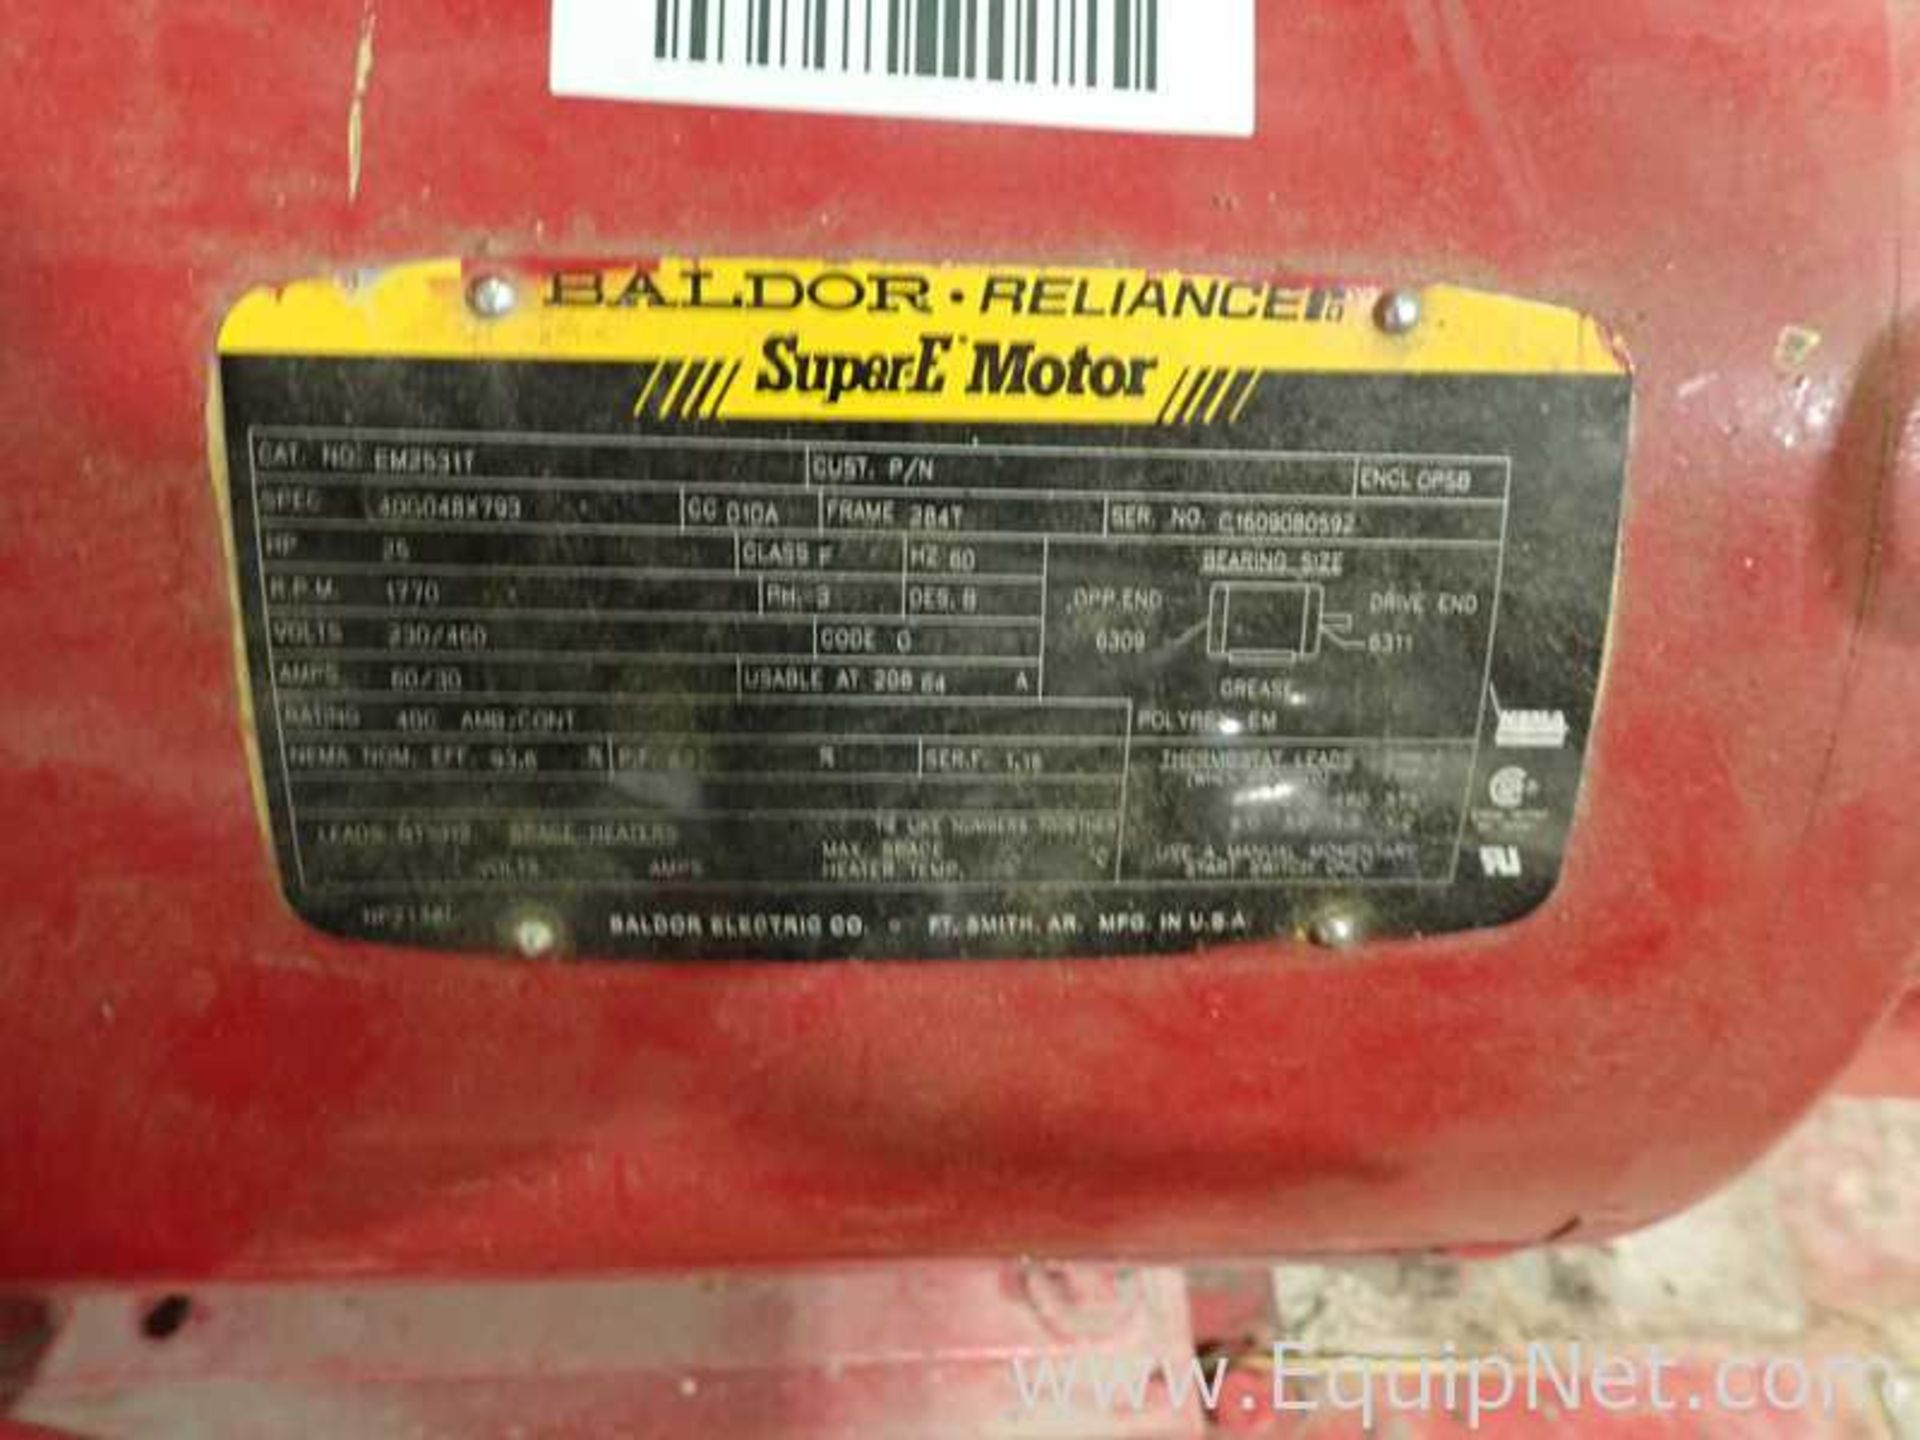 Lot of 2 Bell and Gossett e-1510 25 HP Centrifugal Pumps - Image 8 of 11